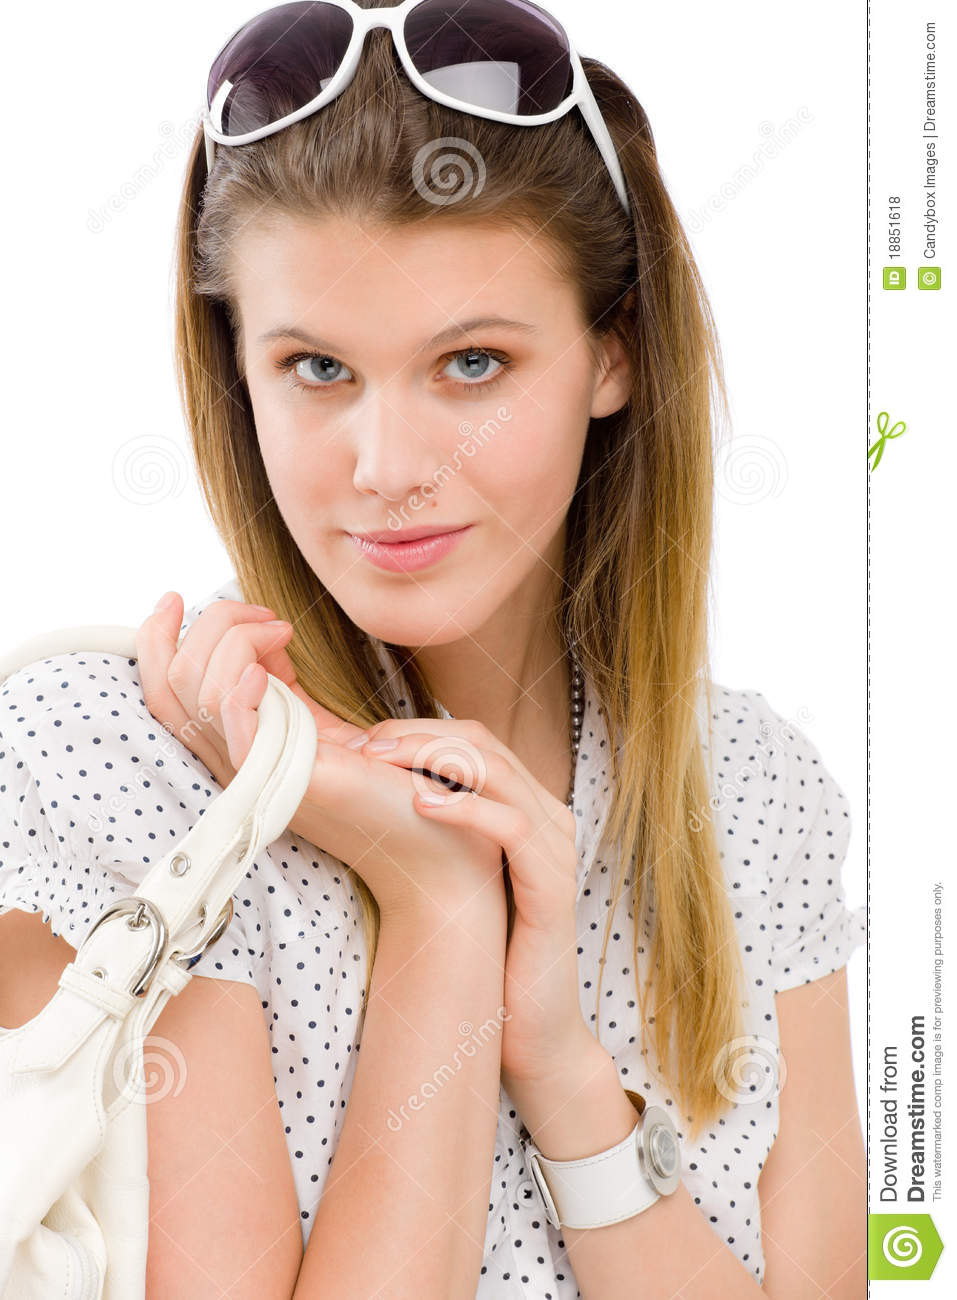 Fashion model - young woman posing in summer designer clothes